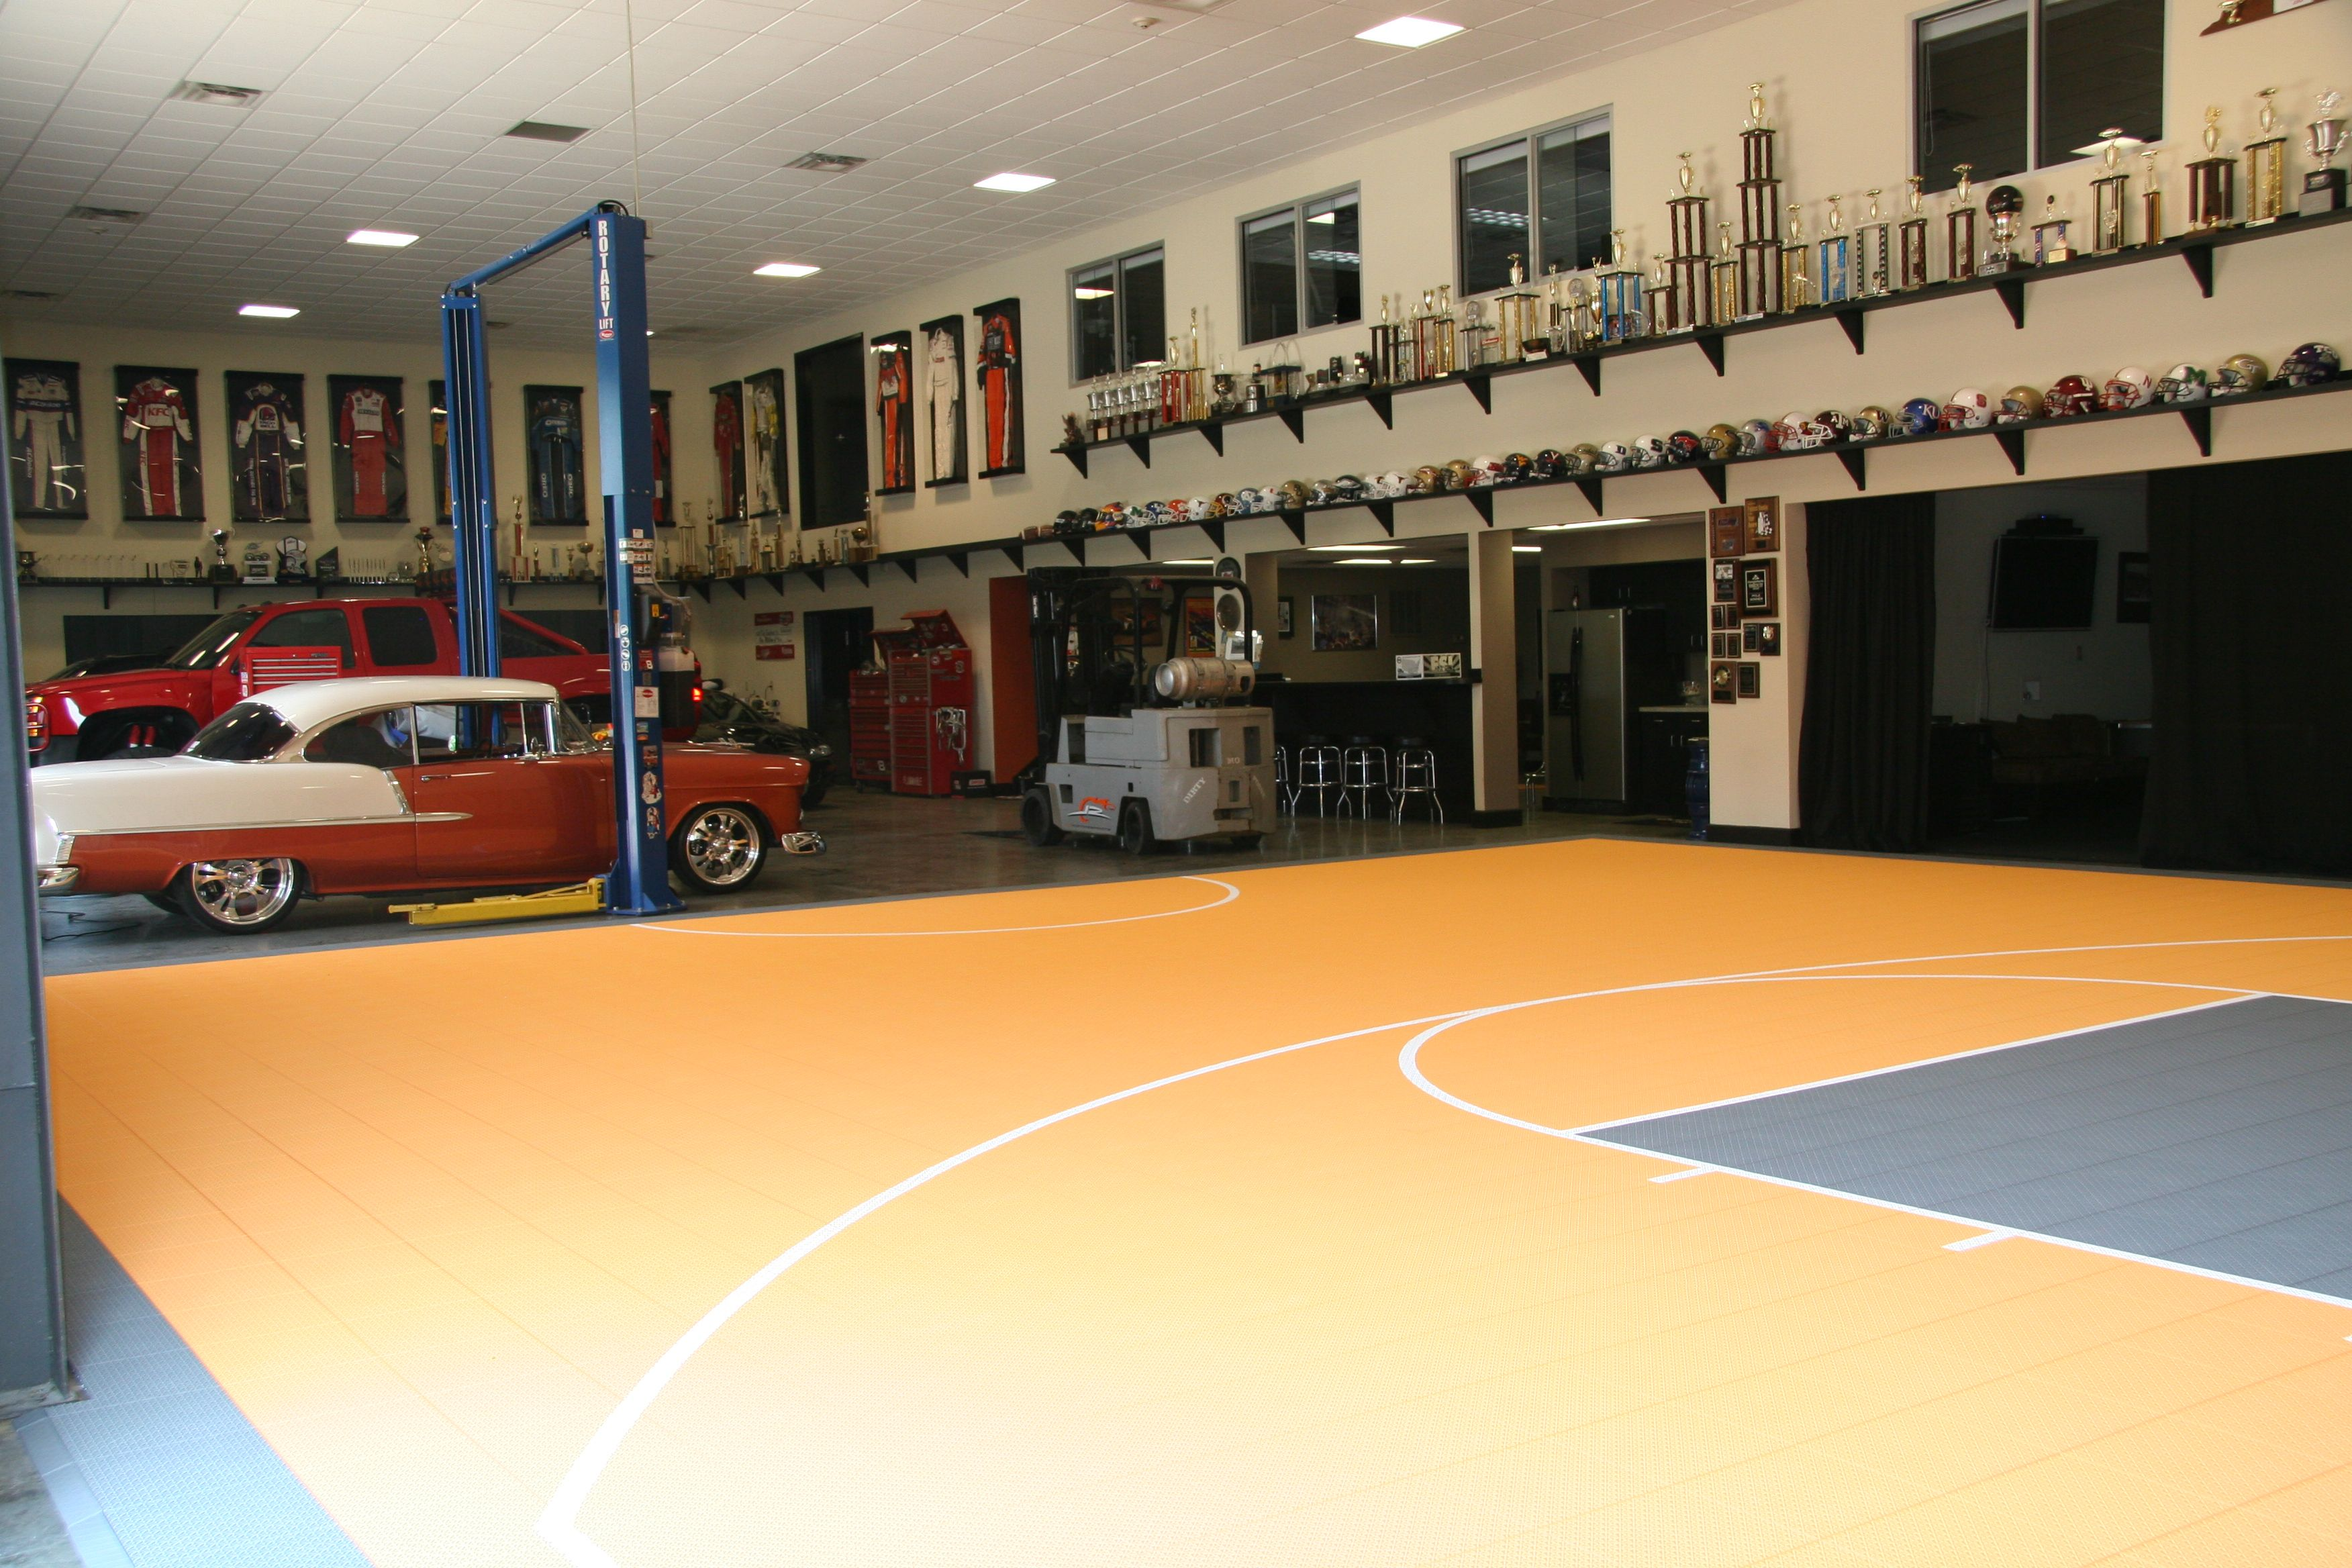 Basketball Court In A Large Warehouse